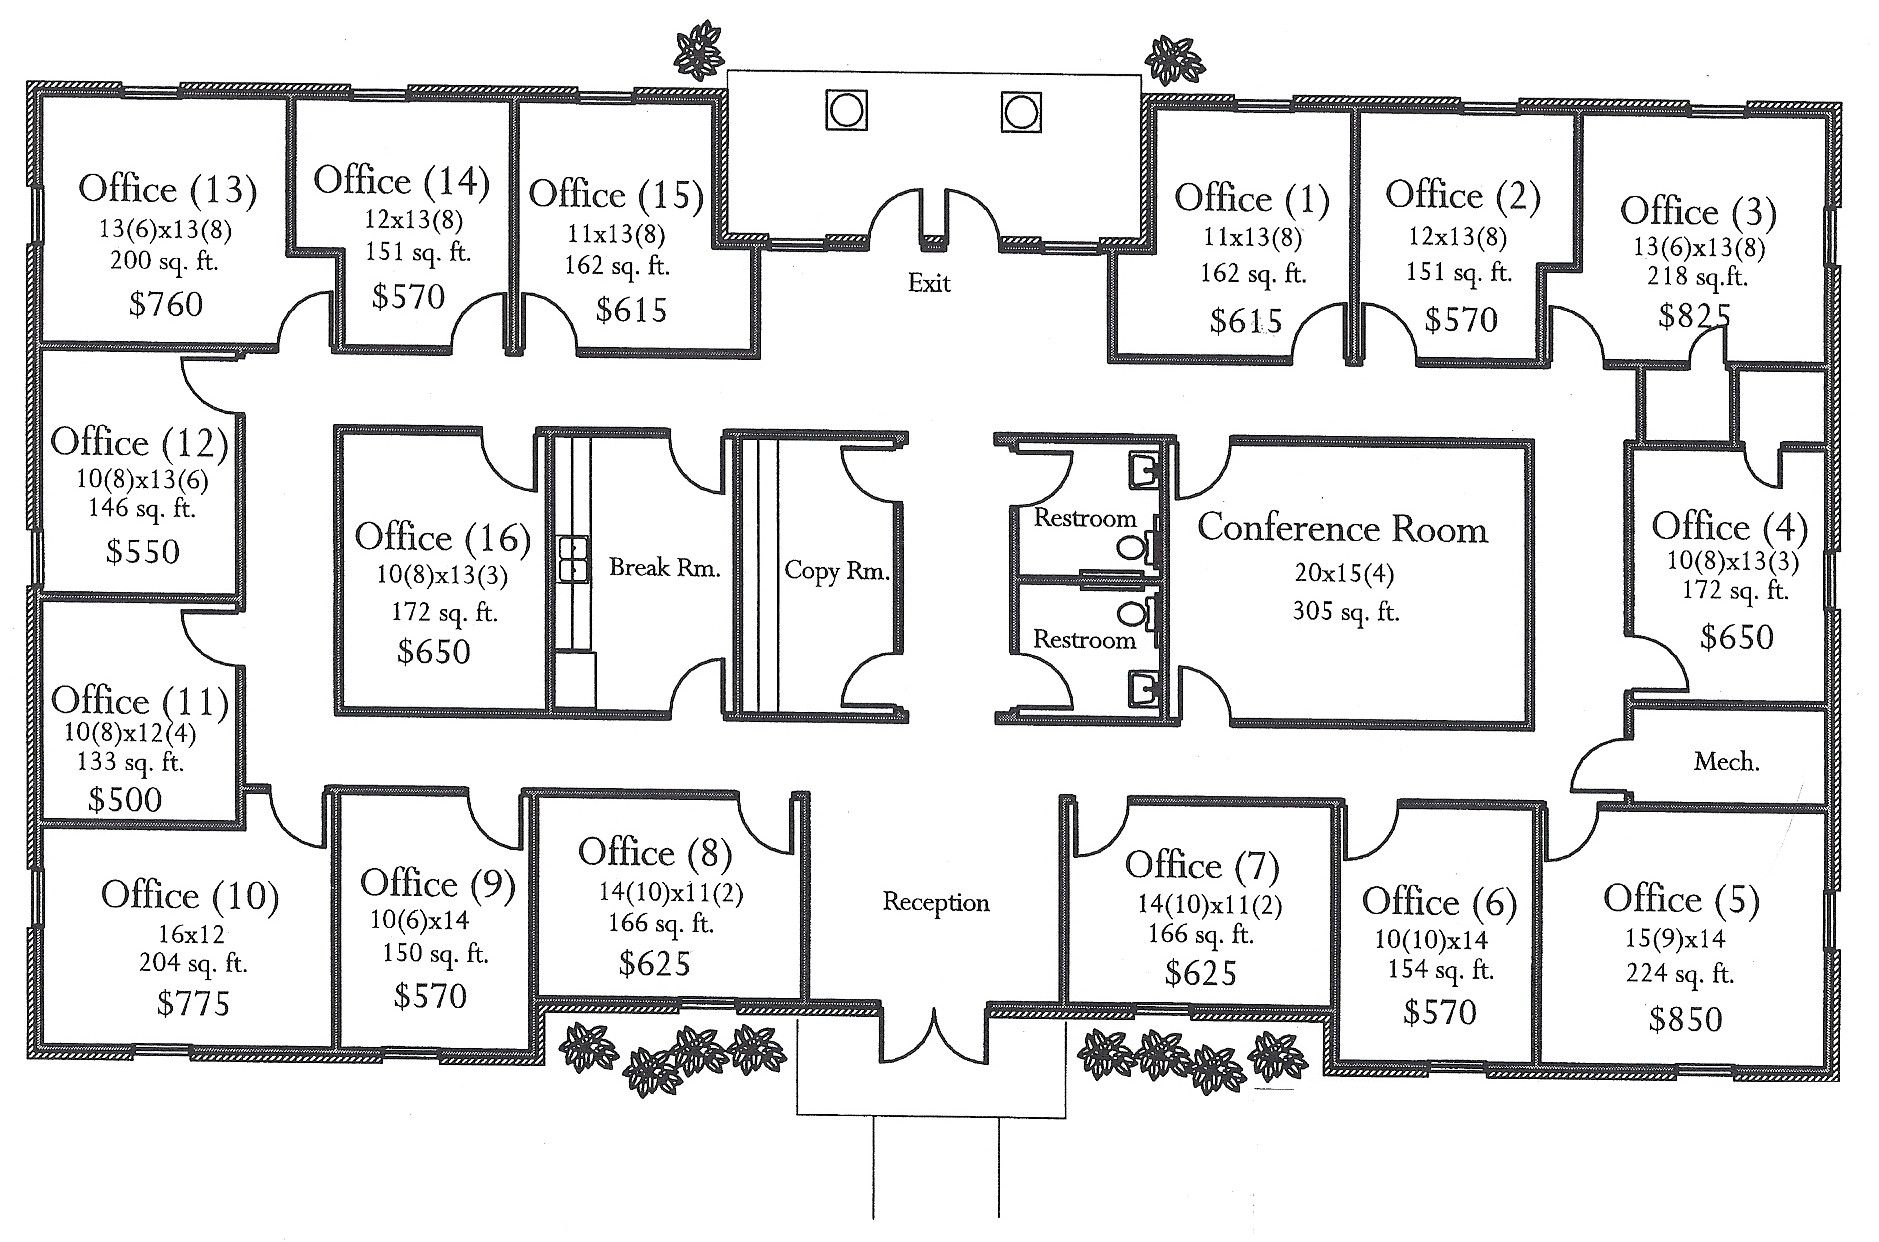 Floor Plan For Small Medical Office Evstudio Architect Engineer Home Office Floor Plan Network